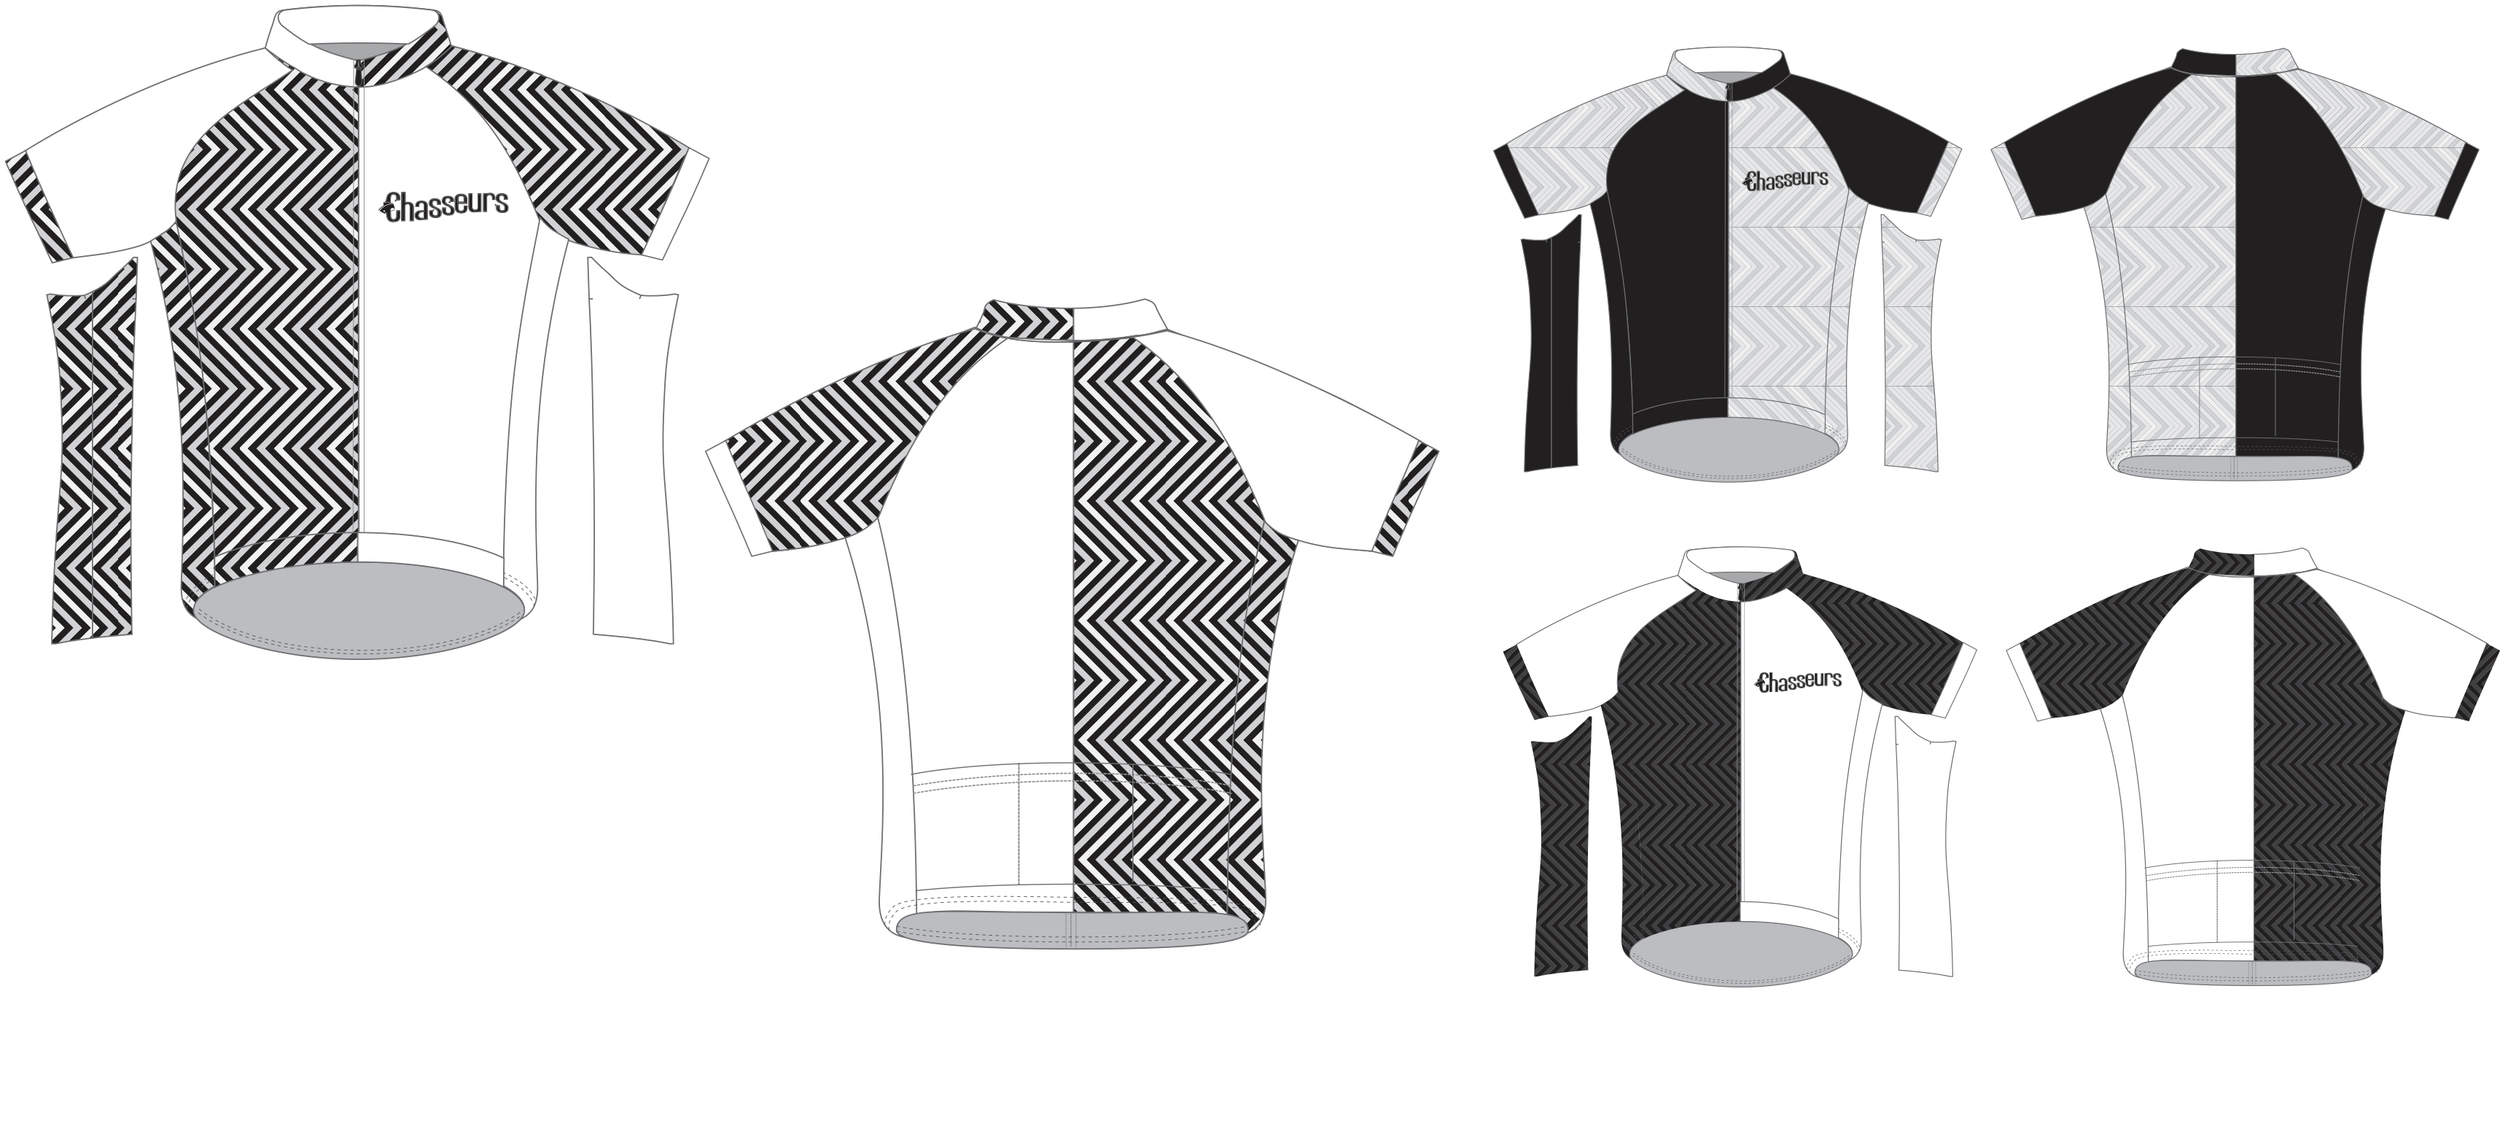 initial sketches for cycling kit top